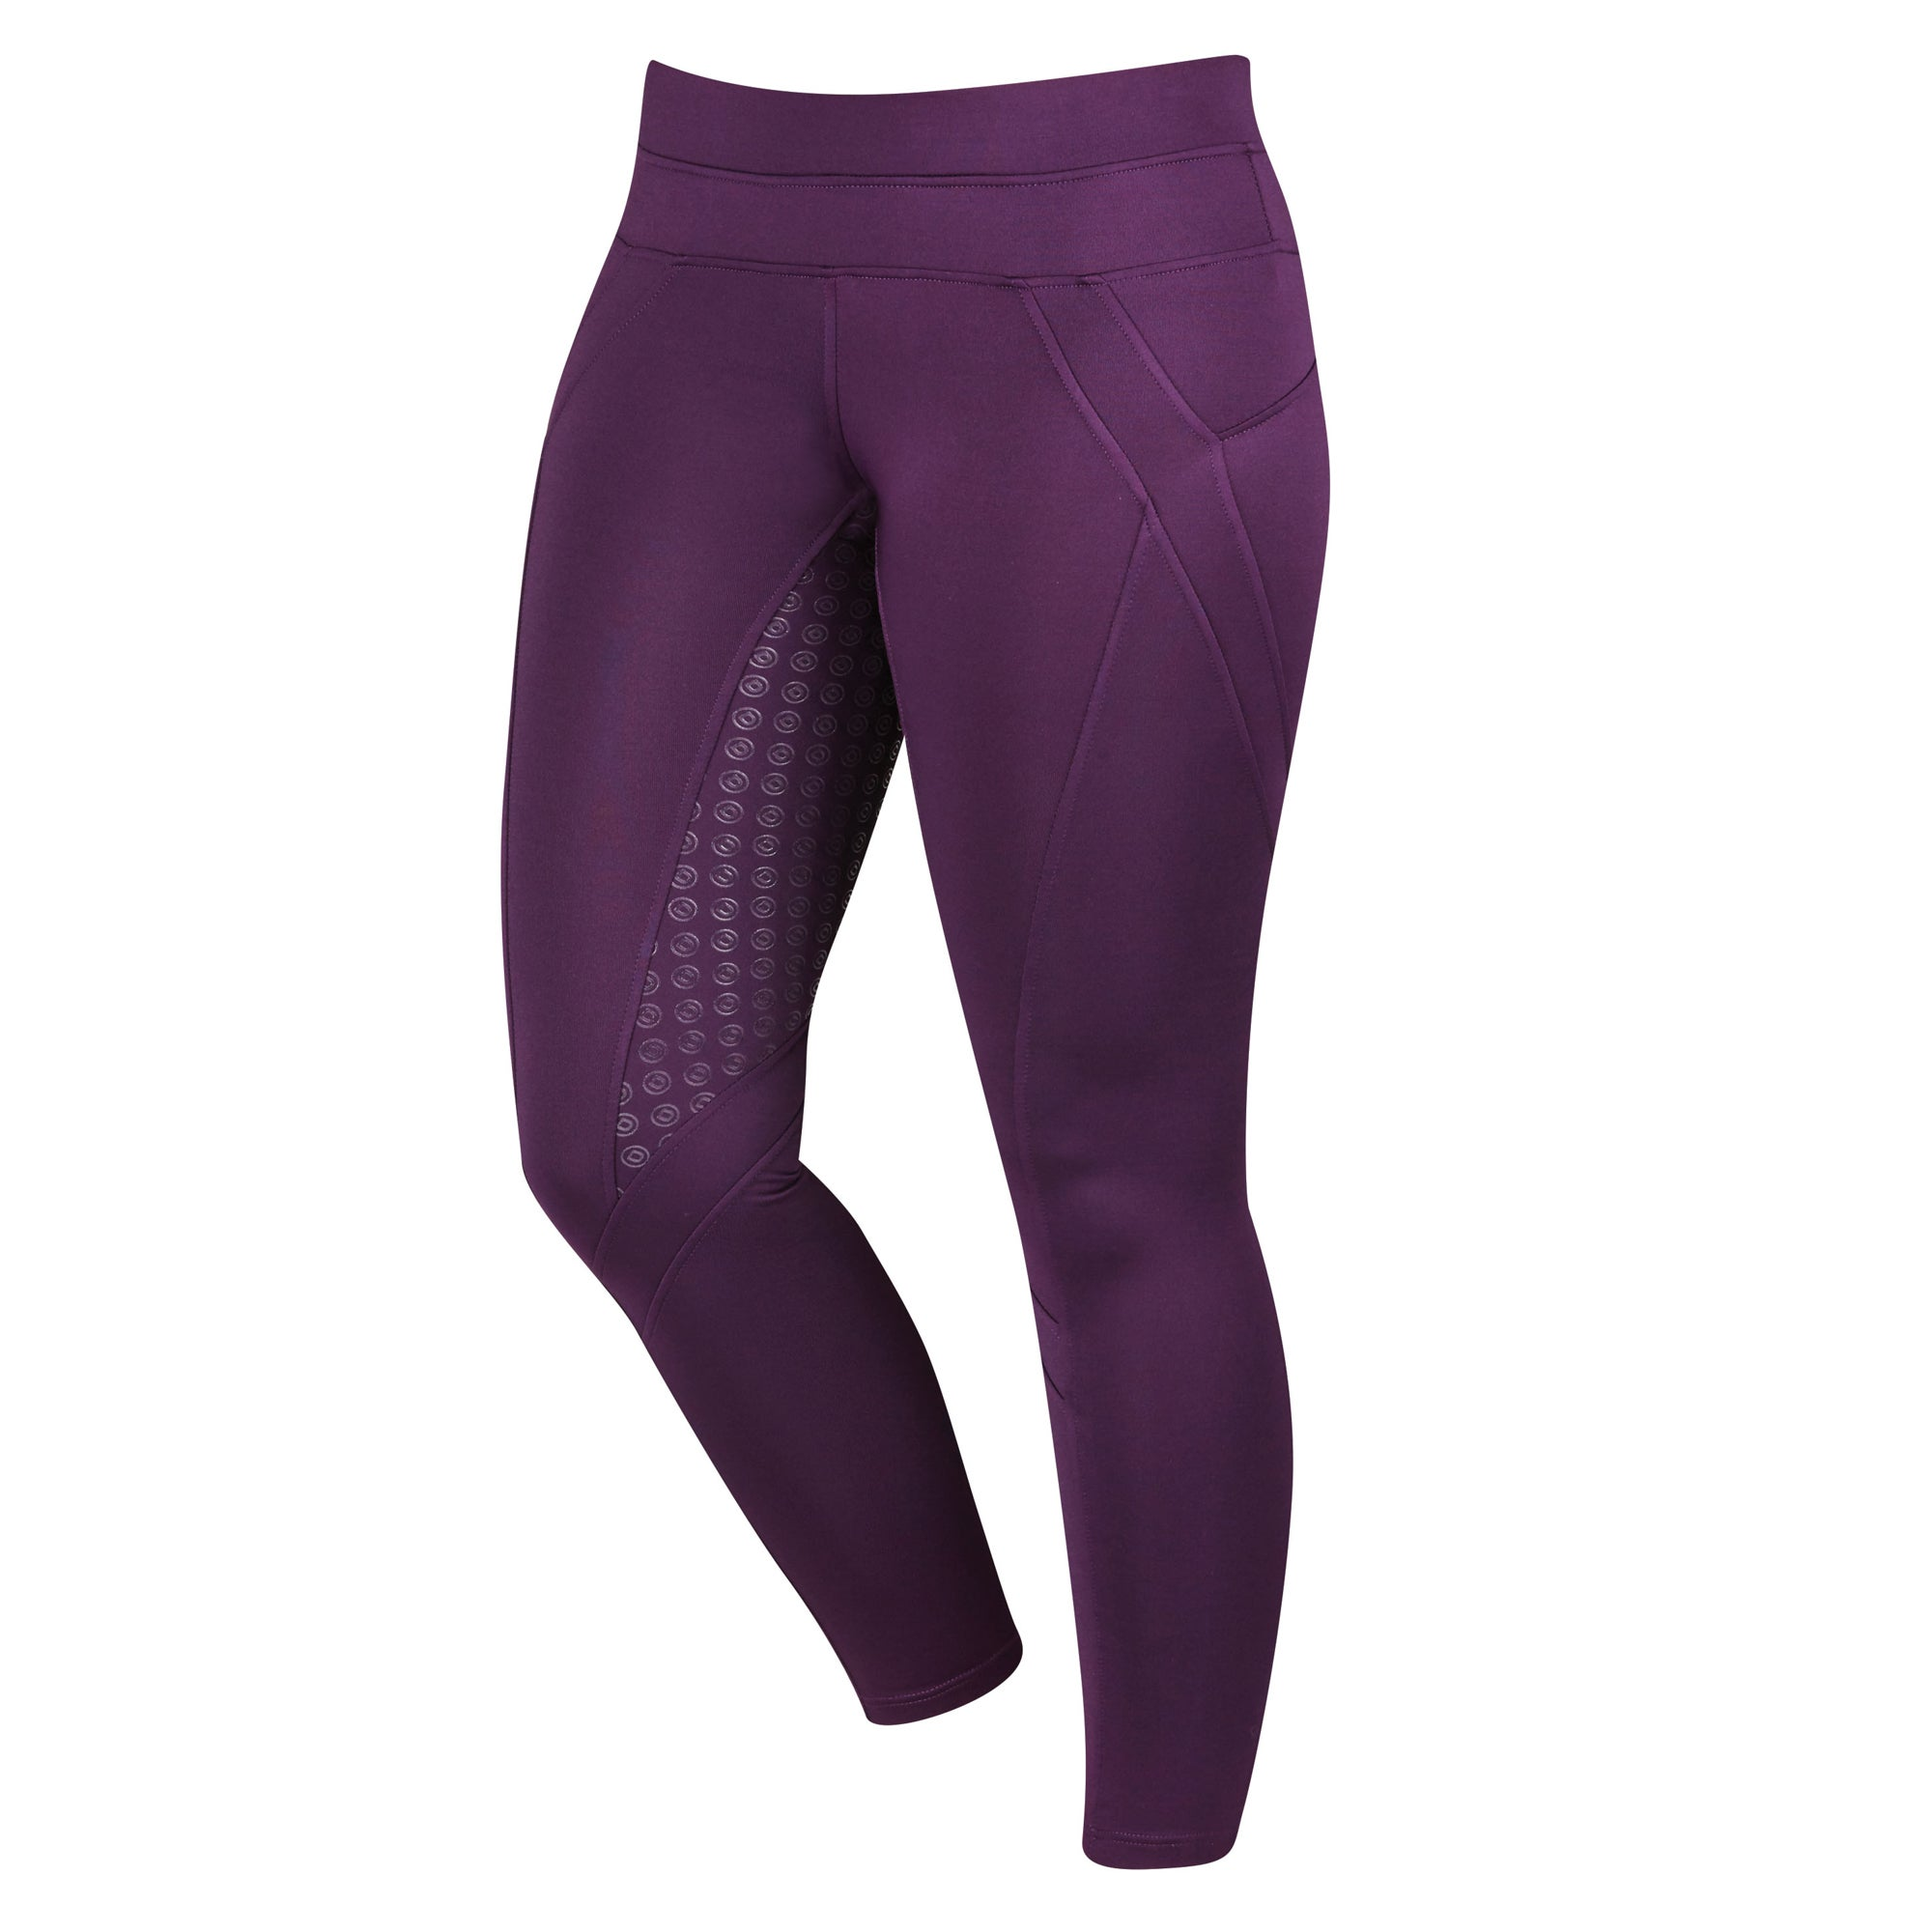 3a0e53503d7f8 Dublin Performance Thermal Active Womens Riding Tights Purple All Sizes